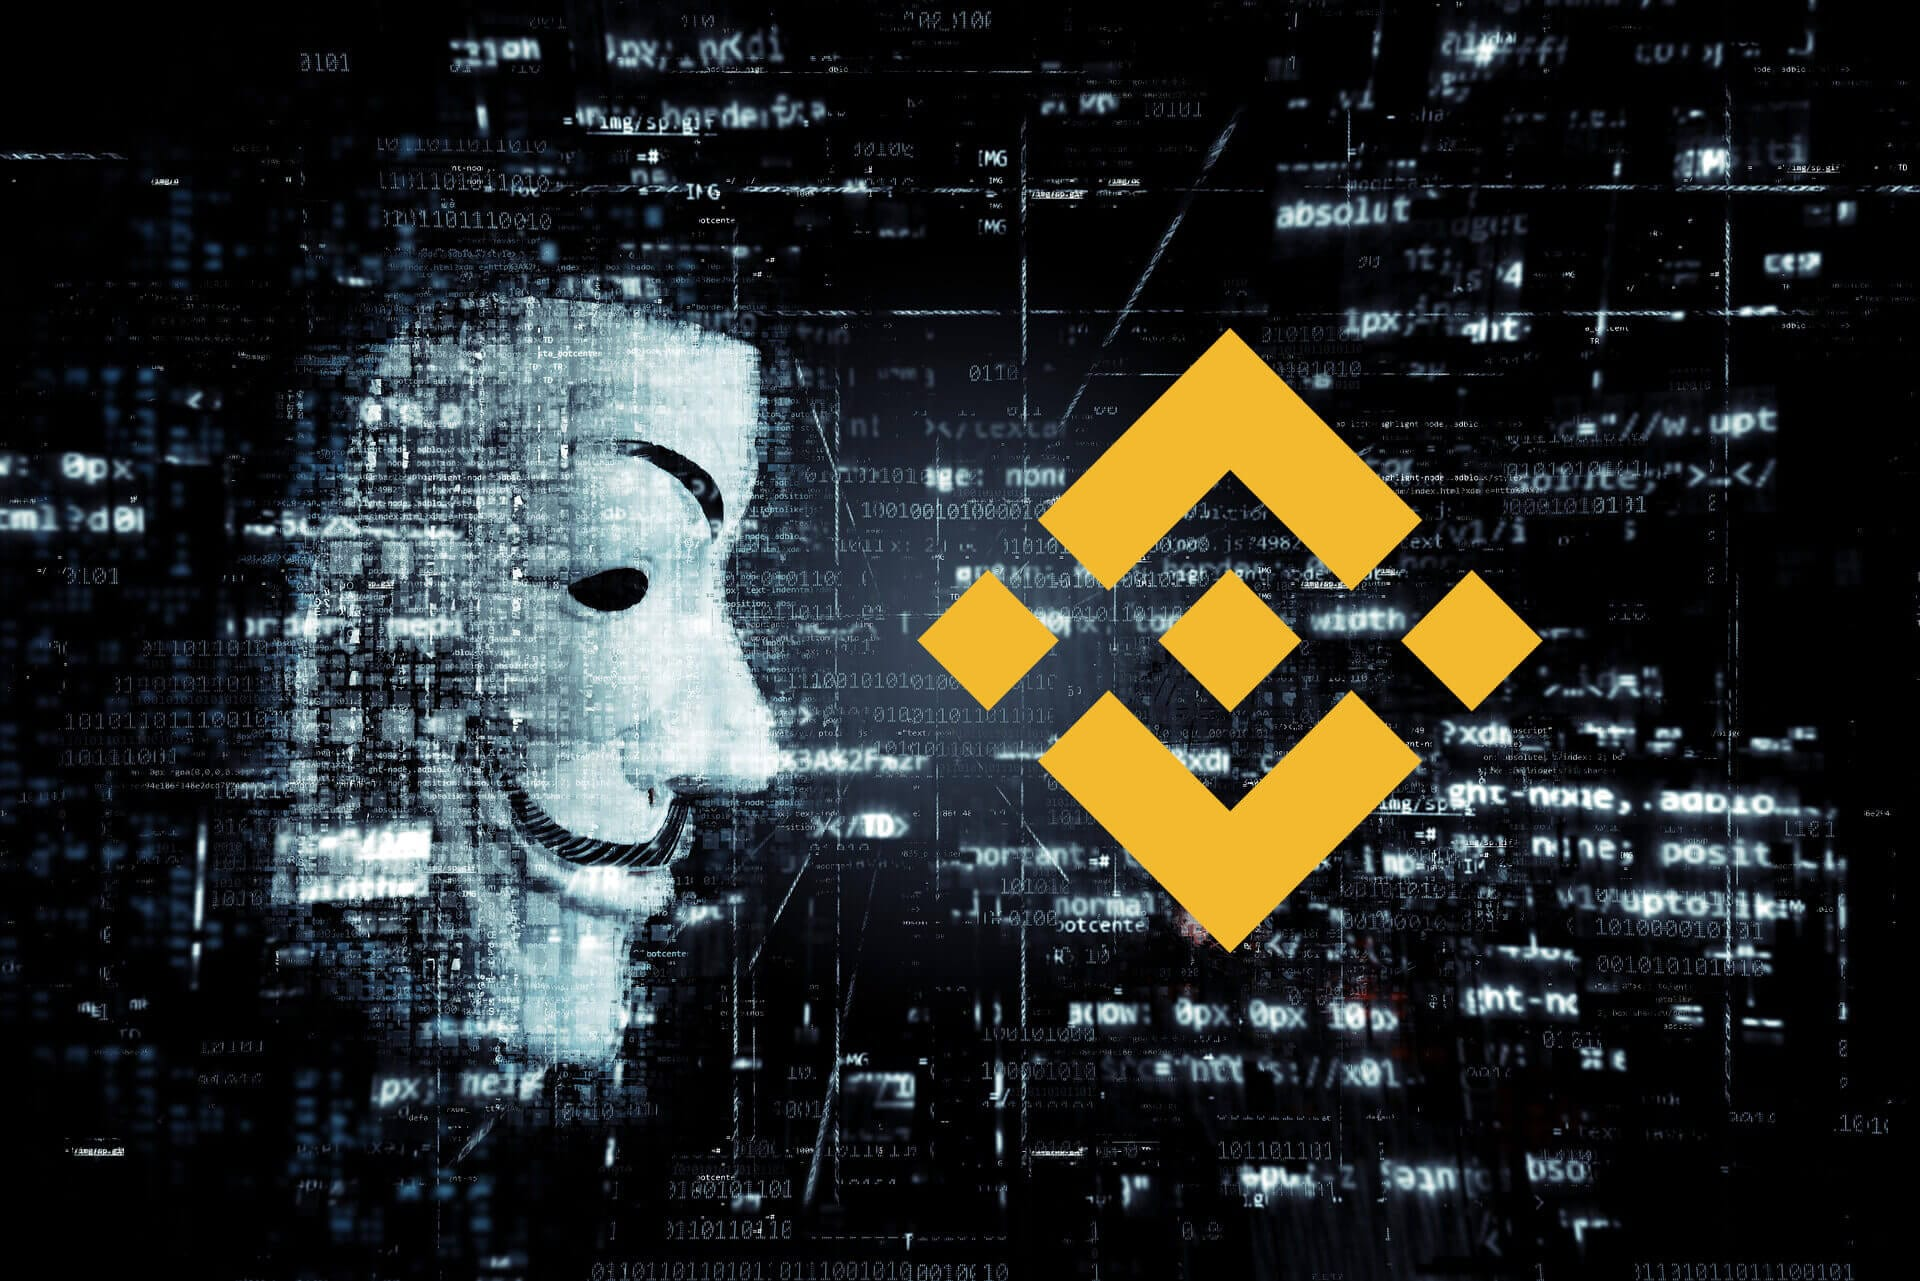 Binance confirms funds are SAFU abandons Bitcoin Rollback in response to 7000 BTC hack - Binance Shuts Down Trading For A Week Following The Hacking Which Led To 7,000 BTC Stolen - Changpeng Zhao Apologizes